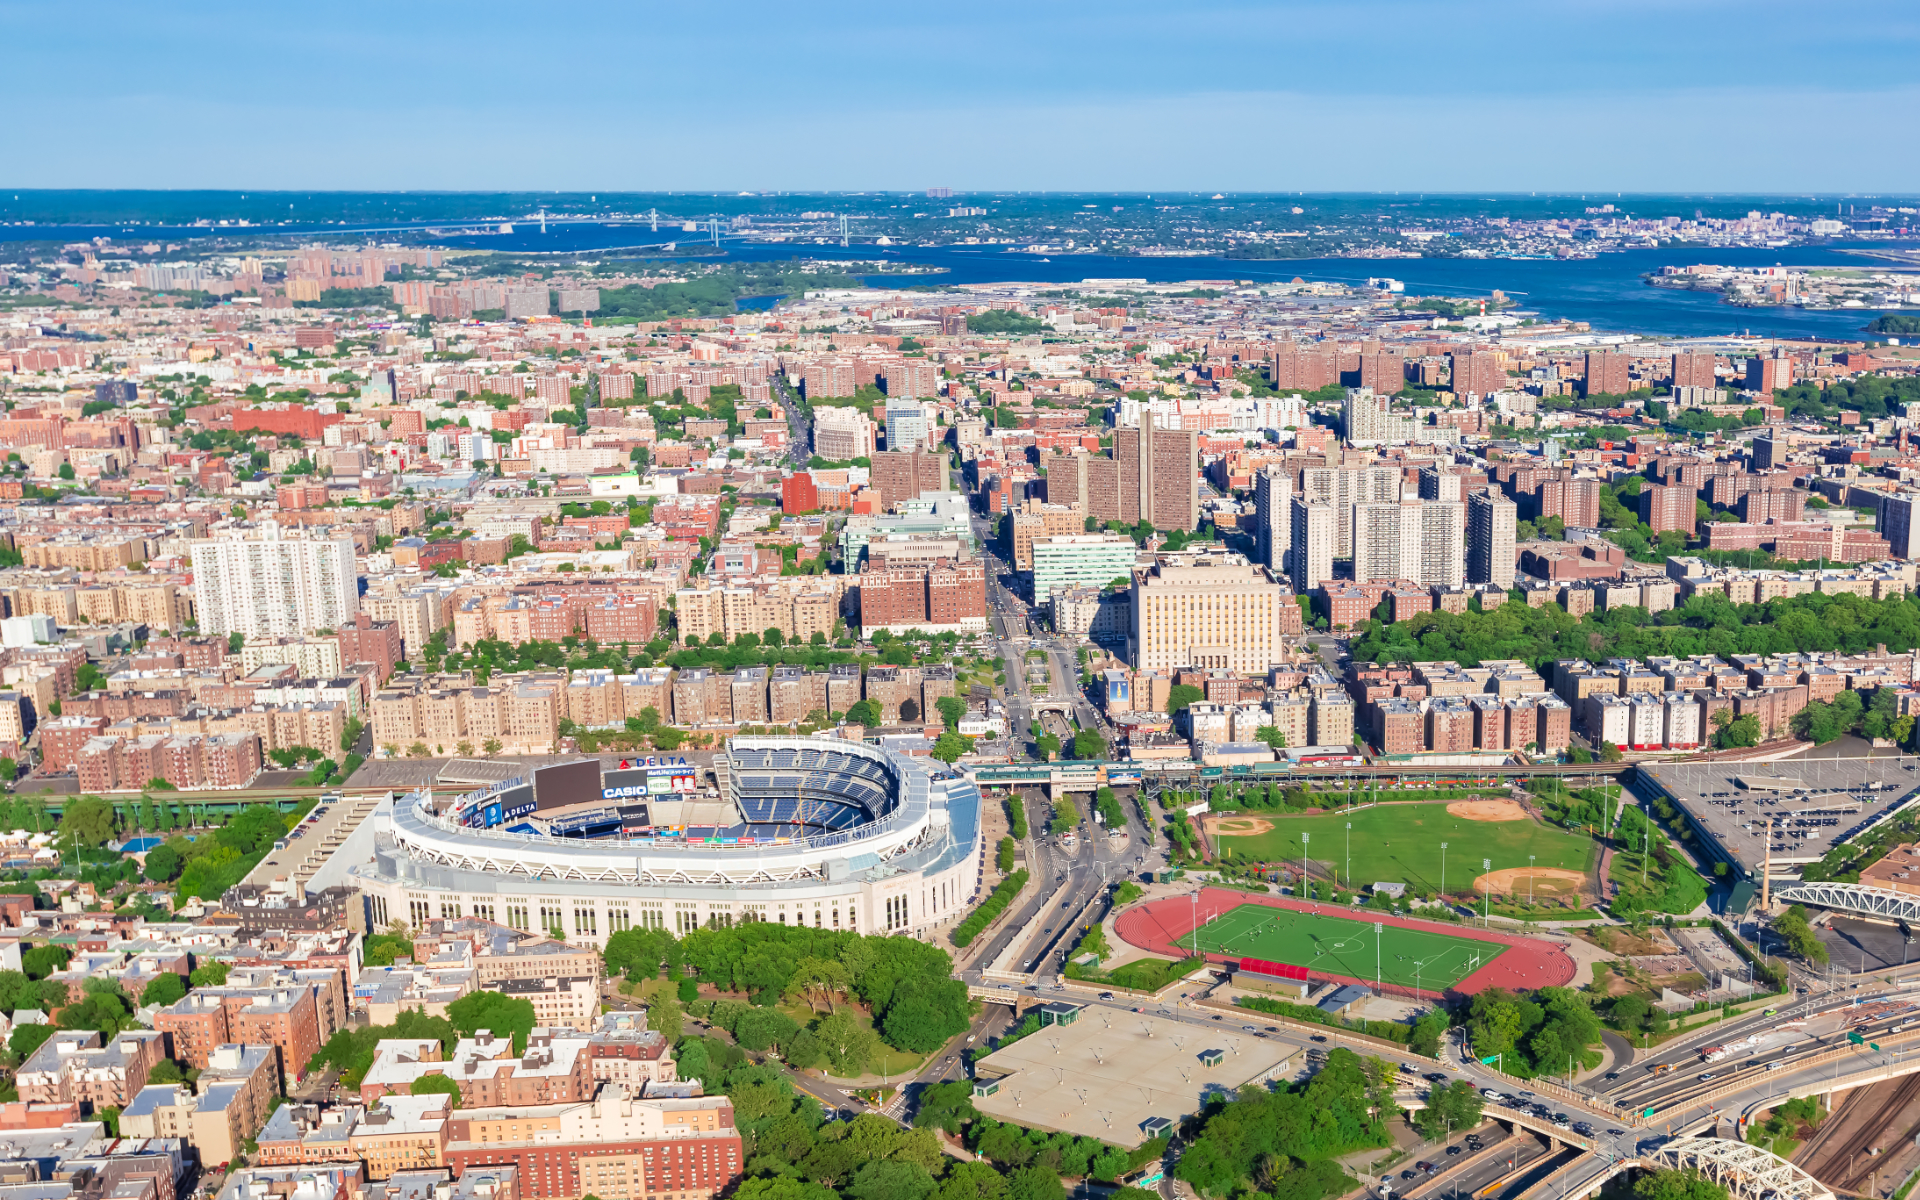 Bronx - Connect with a knowledgeable realtor who has hands on experience when dealing with the Bronx. We will assist you in finding the right area and the home that best suits you.